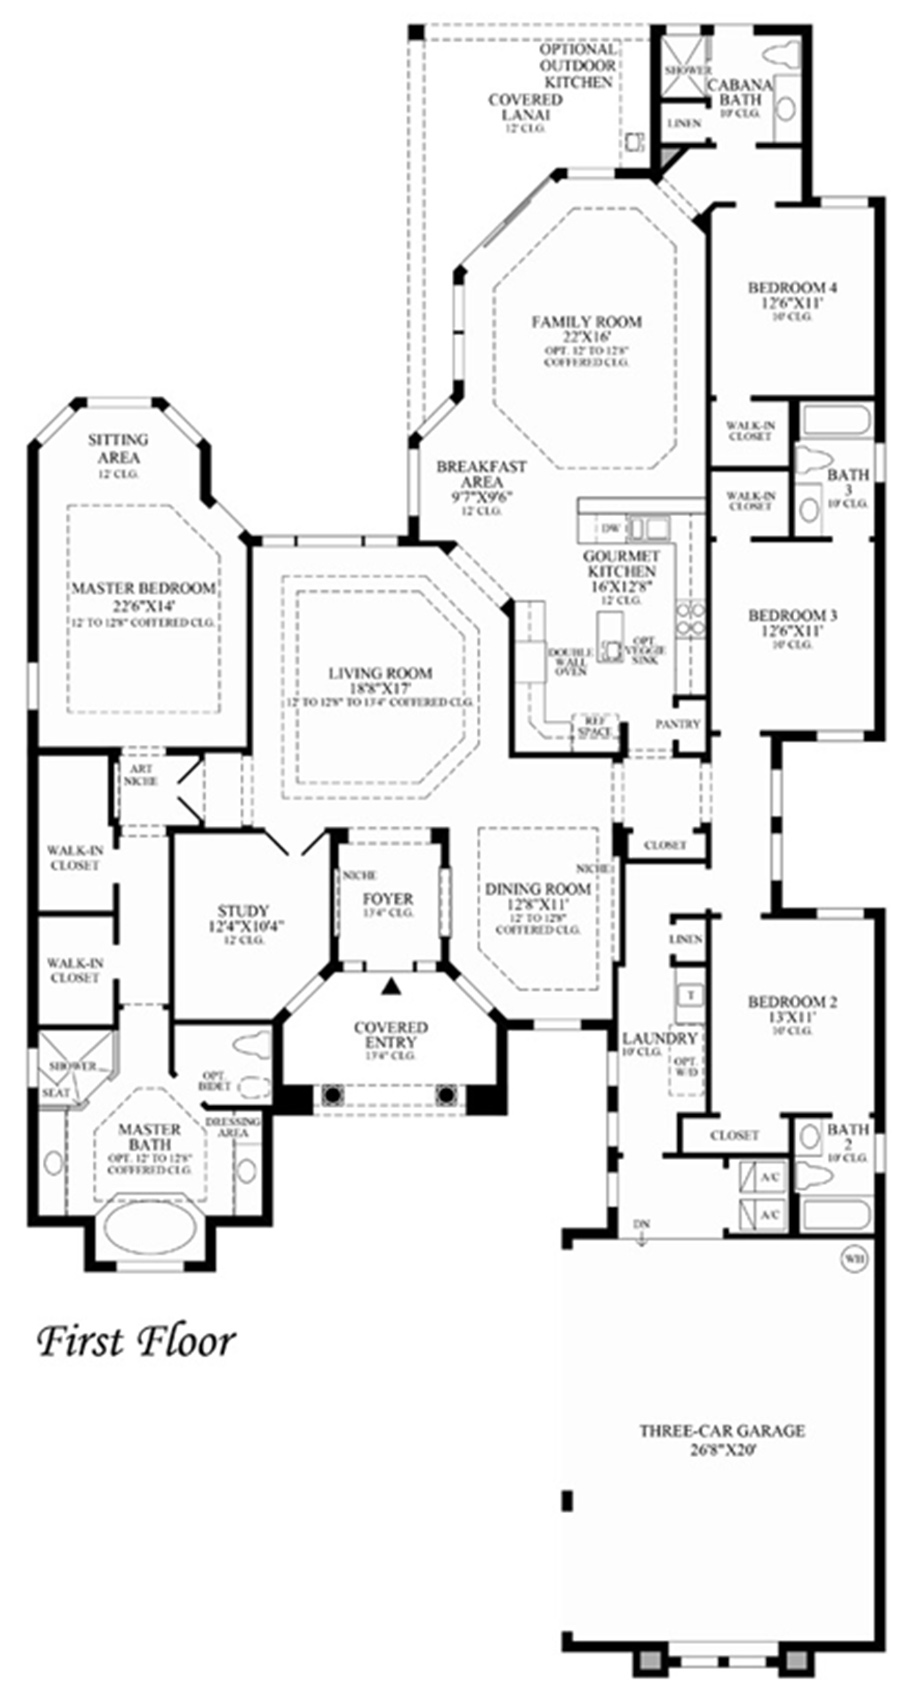 Toll brothers floor plans florida thefloors co for Floor plans florida